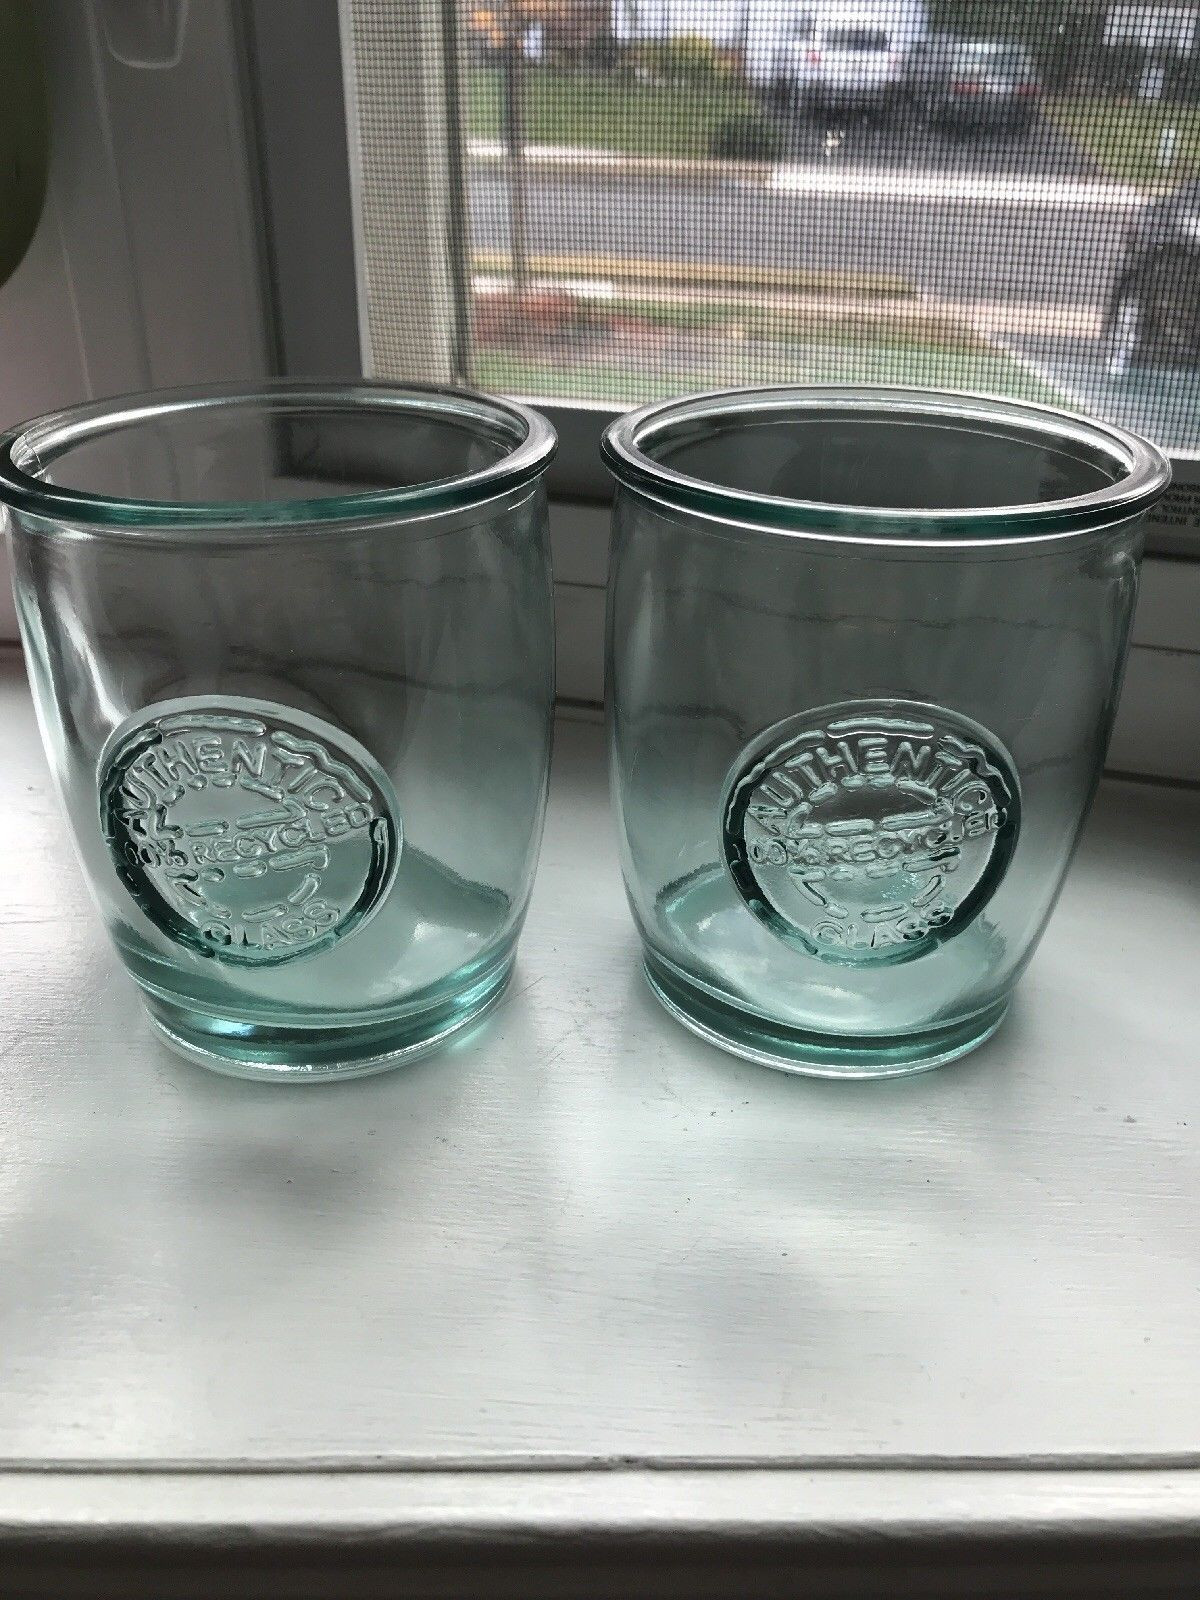 san miguel recycled glass vase of pair of new san miguel 100 recycled glass wine glasses a23 56 inside pair of new san miguel 100 recycled glass wine glasses 1 of 1only 3 available see more